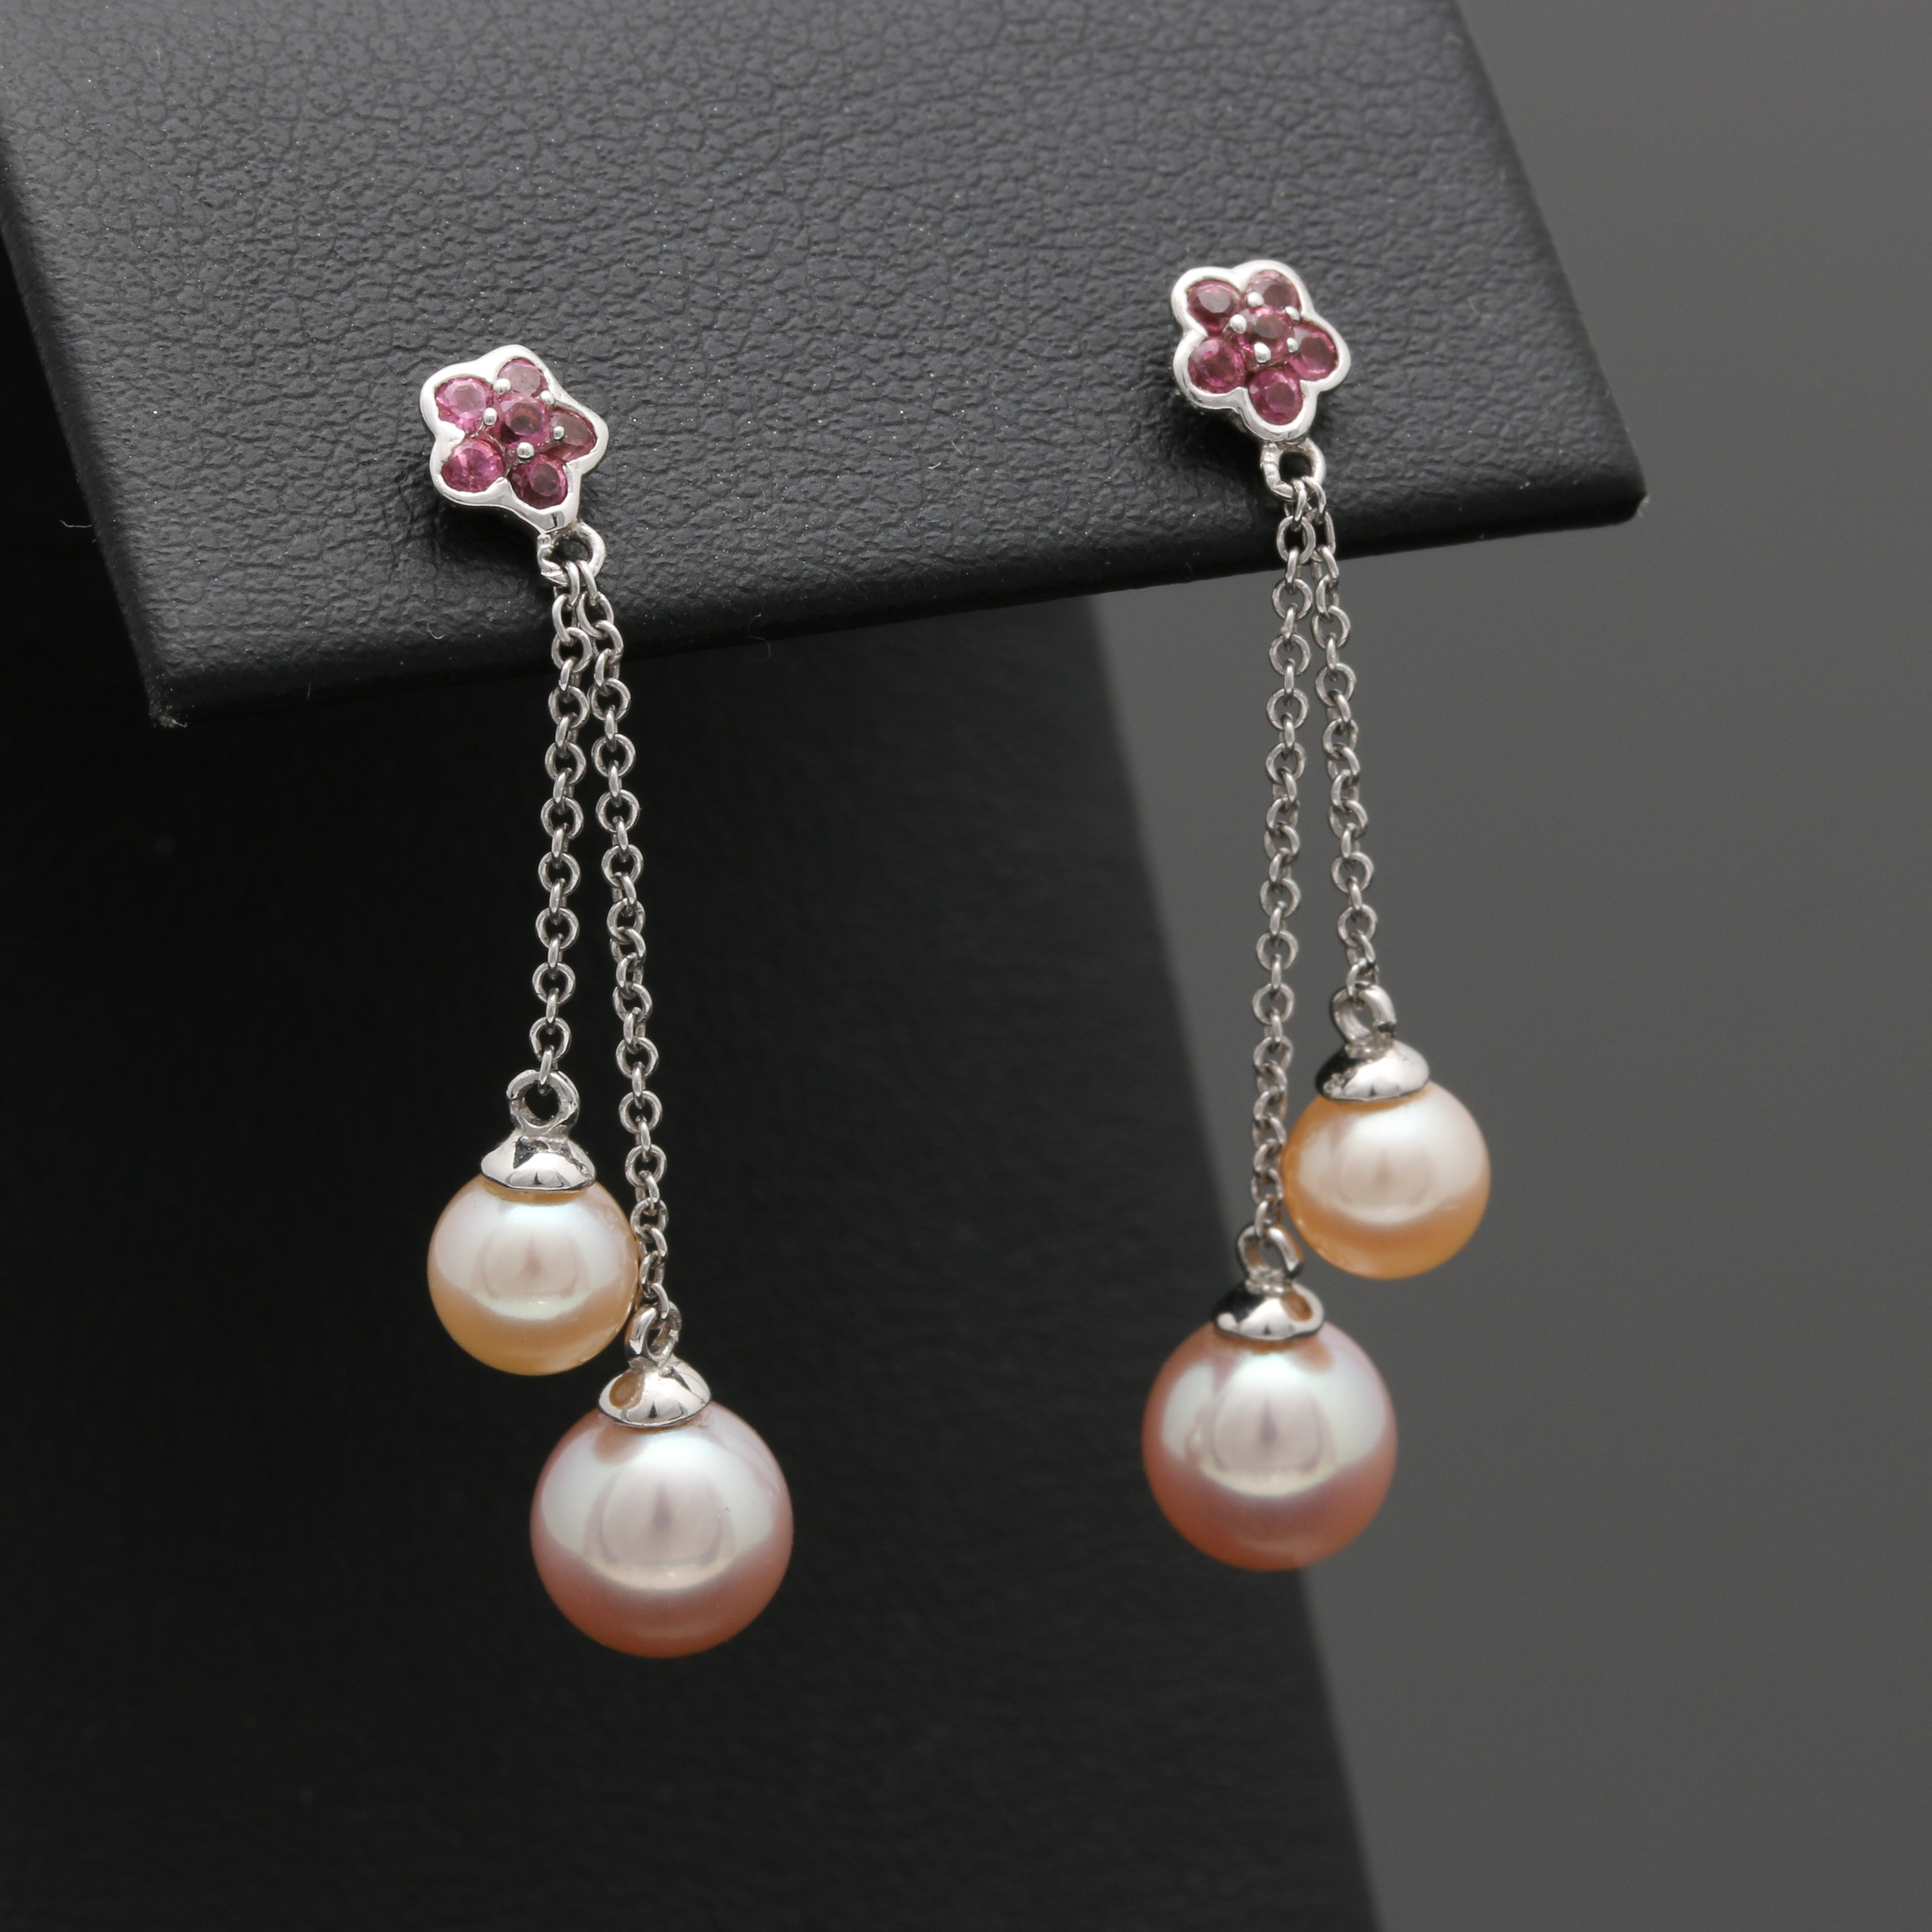 14K White Gold Cultured Pearl and Pink Tourmaline Earrings